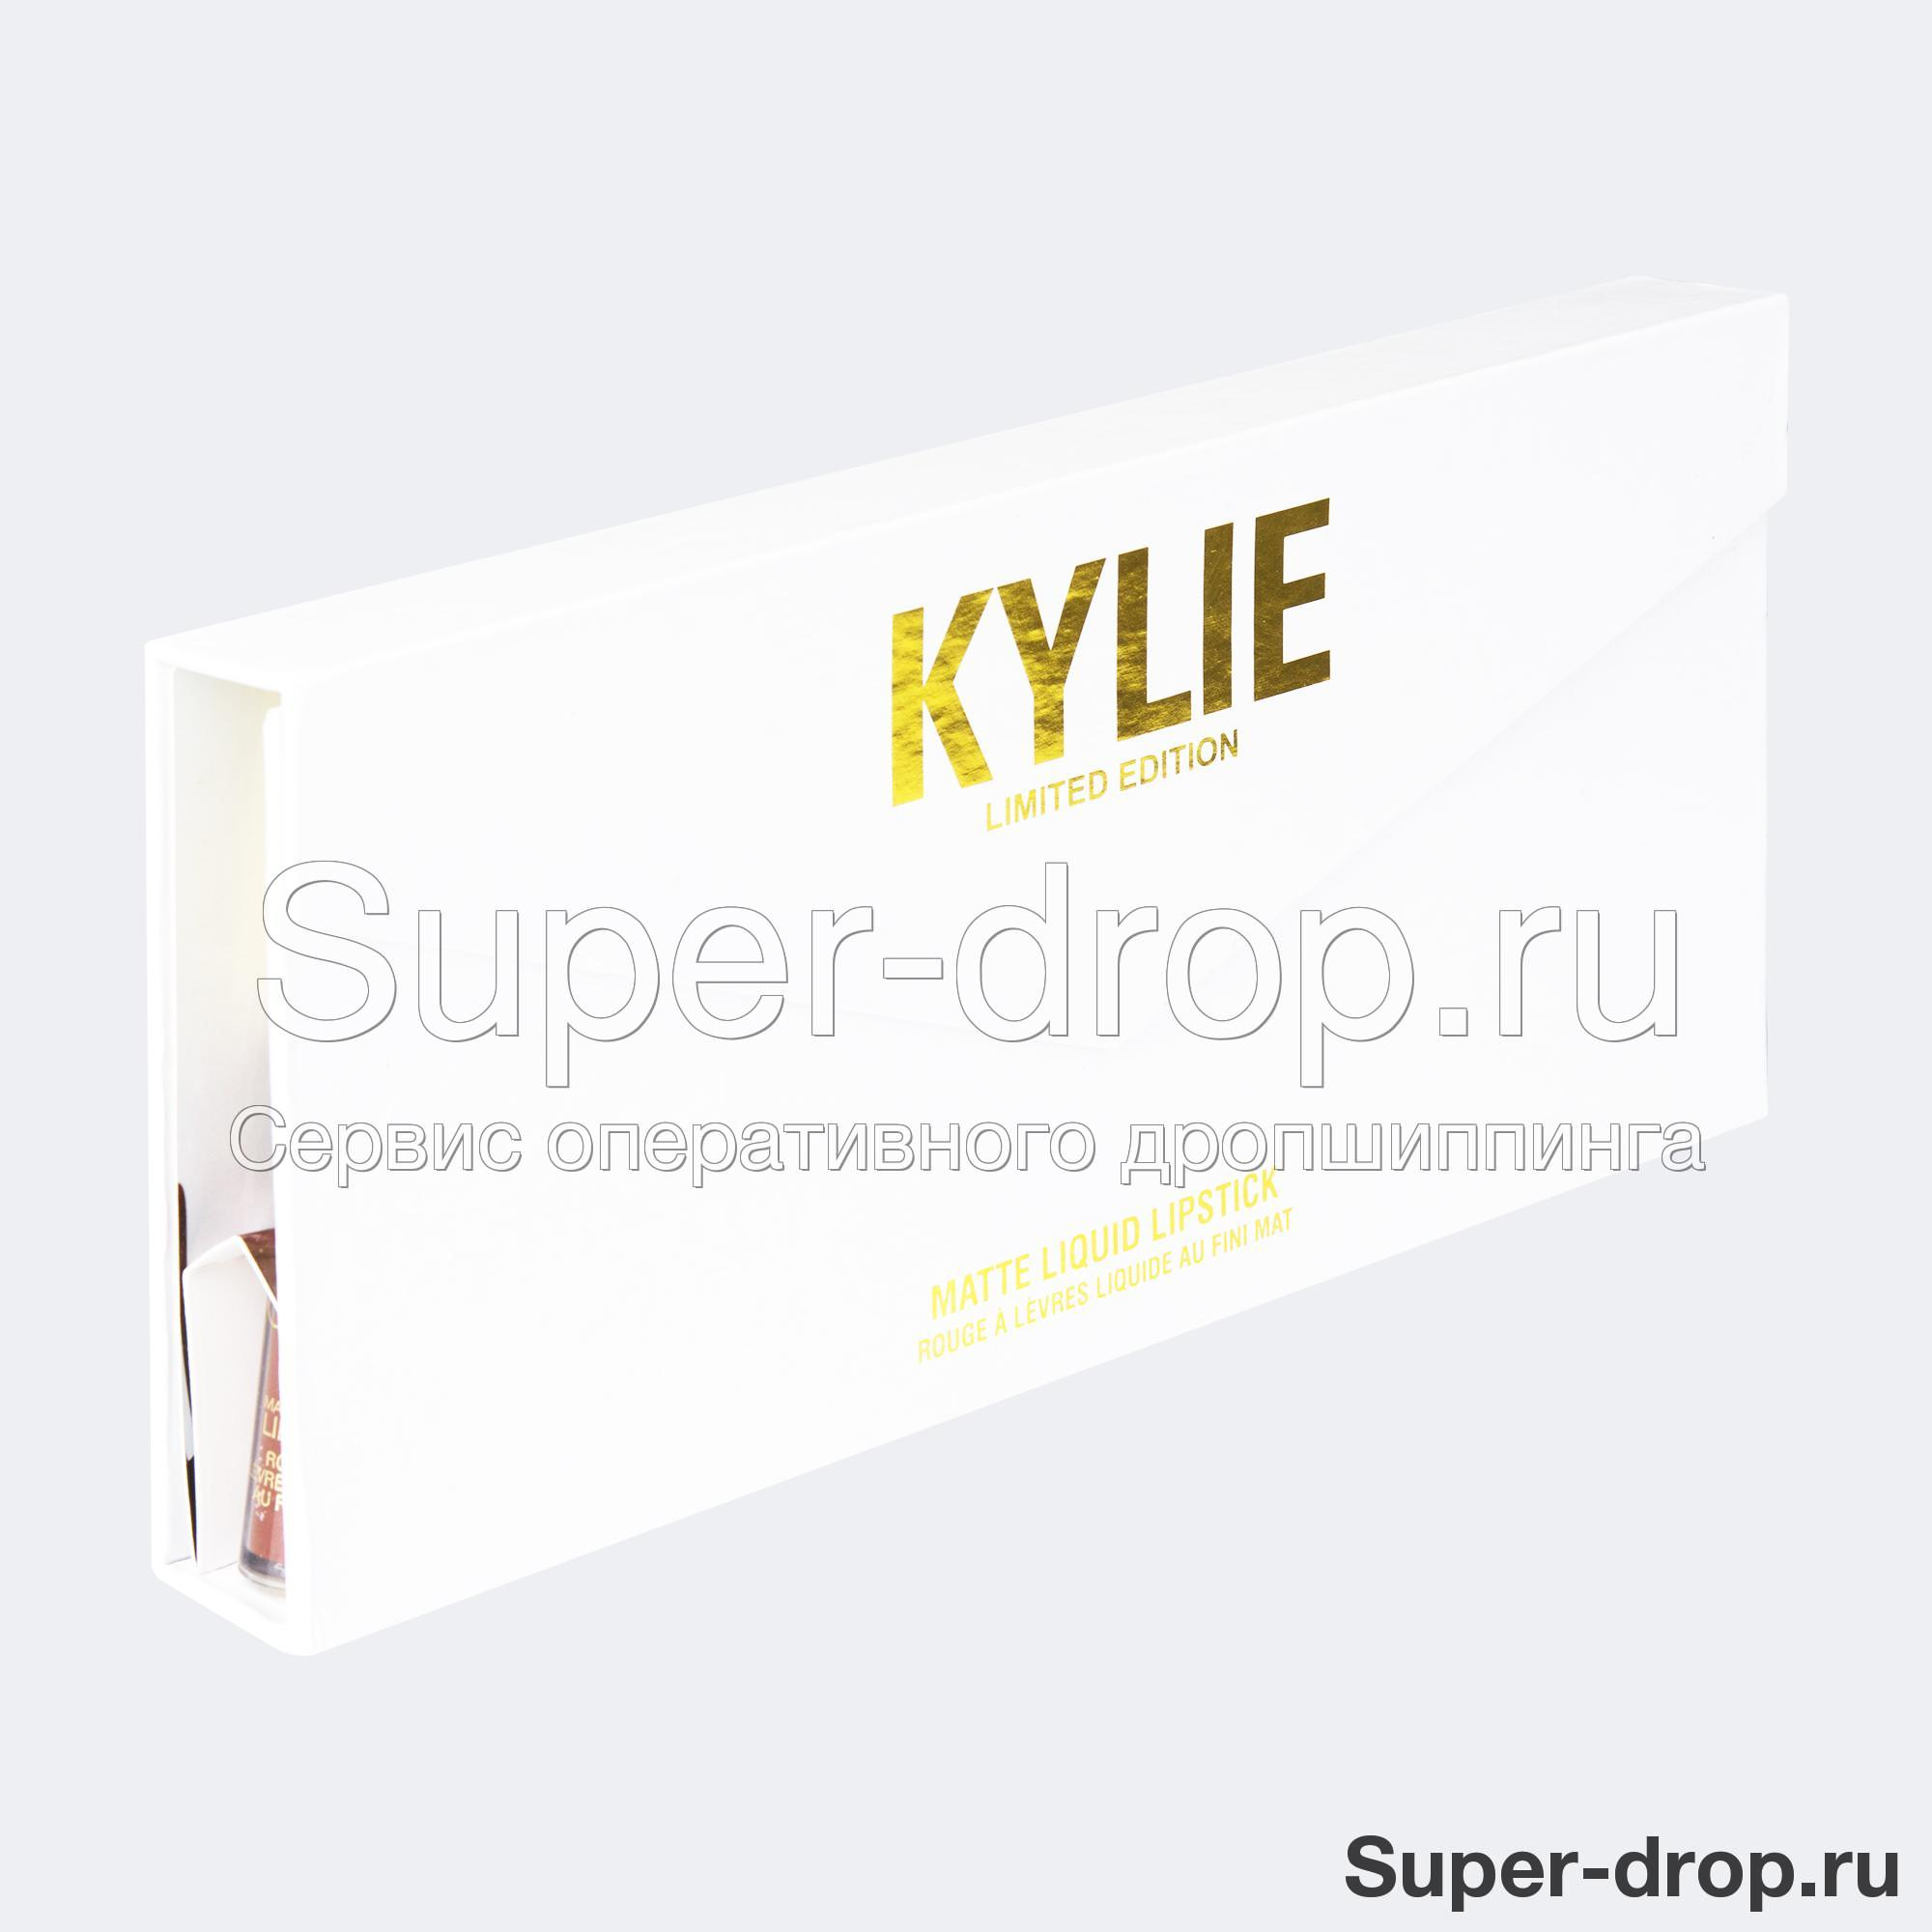 Матовая жидкая помада Kylie Limited Edition Matte Liquid Lipstick